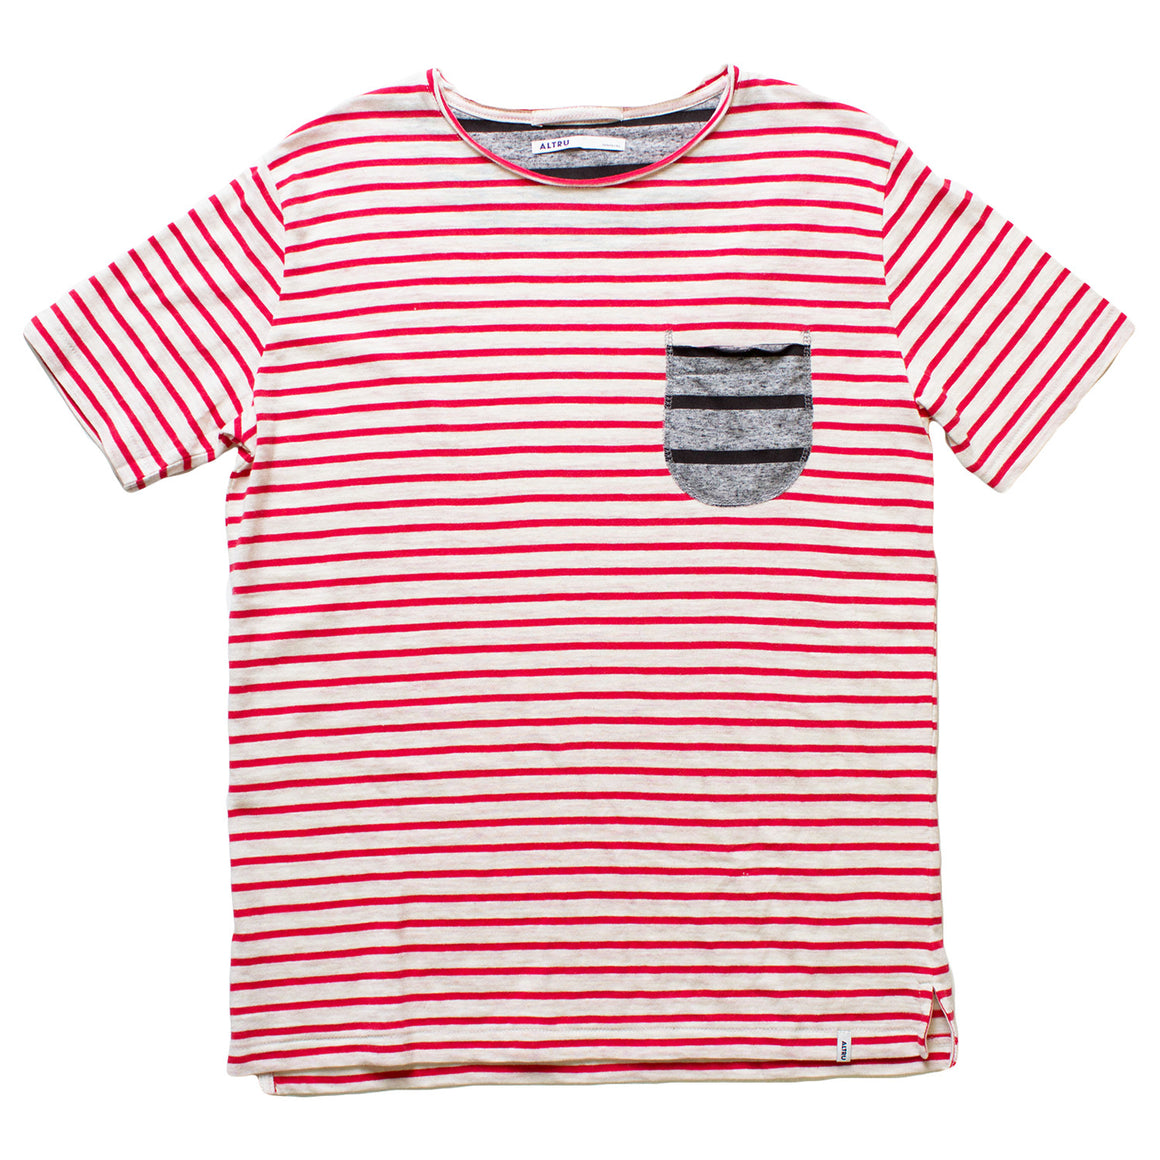 Altru Apparel Red Stripes with contrasting Pocket T-shirt